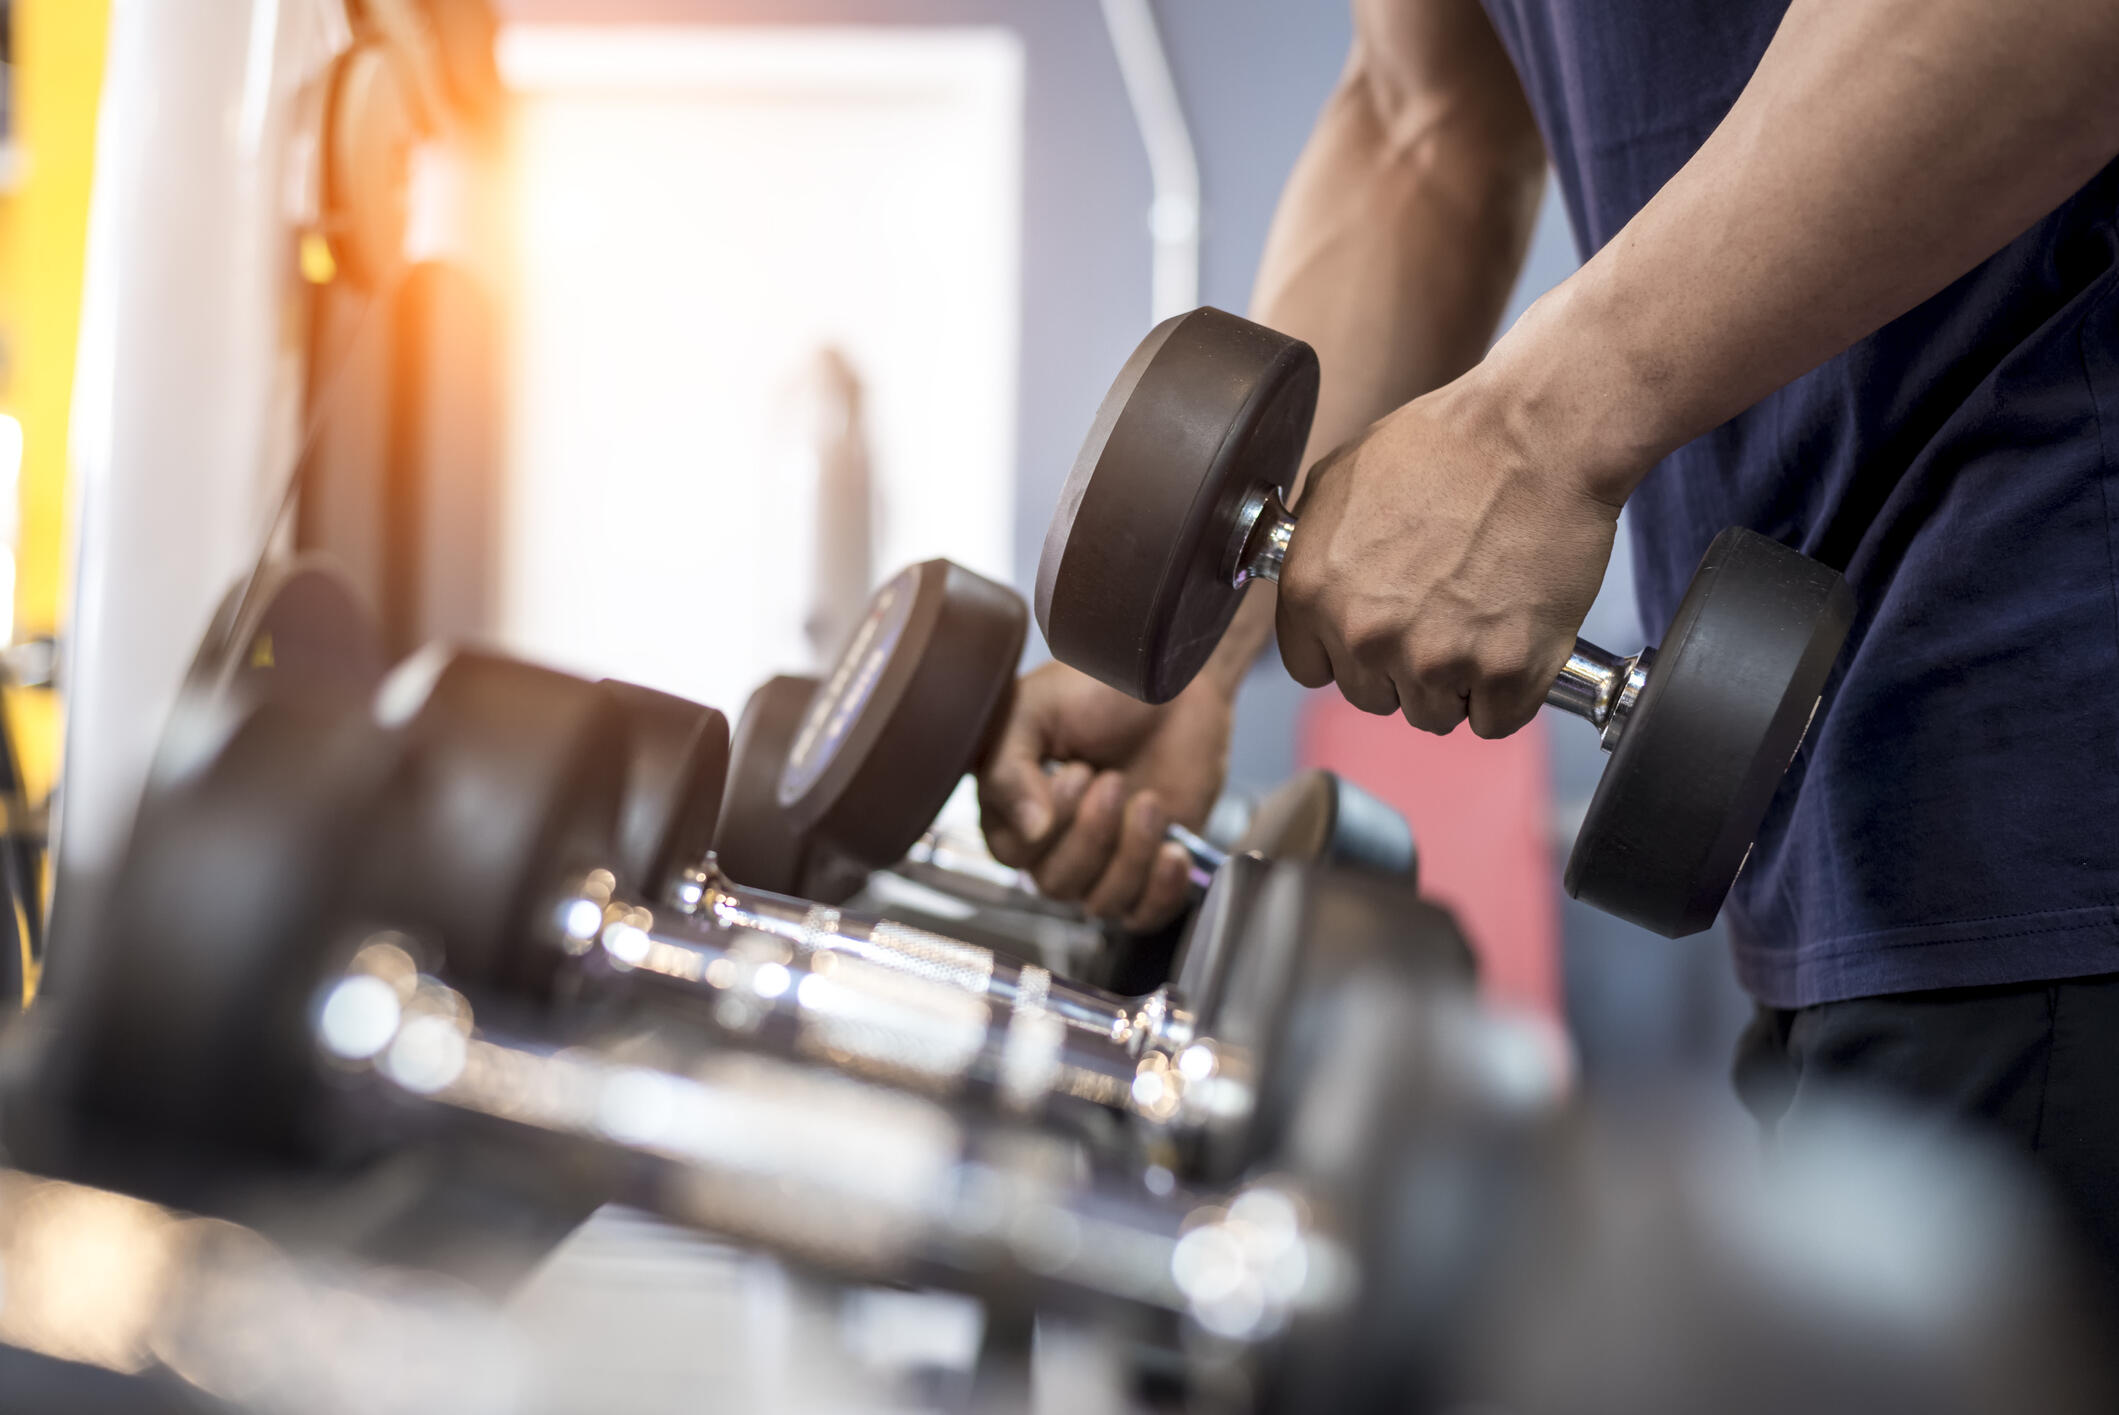 Gym etiquette for newbies: Don't break these 10 important rules - CNET